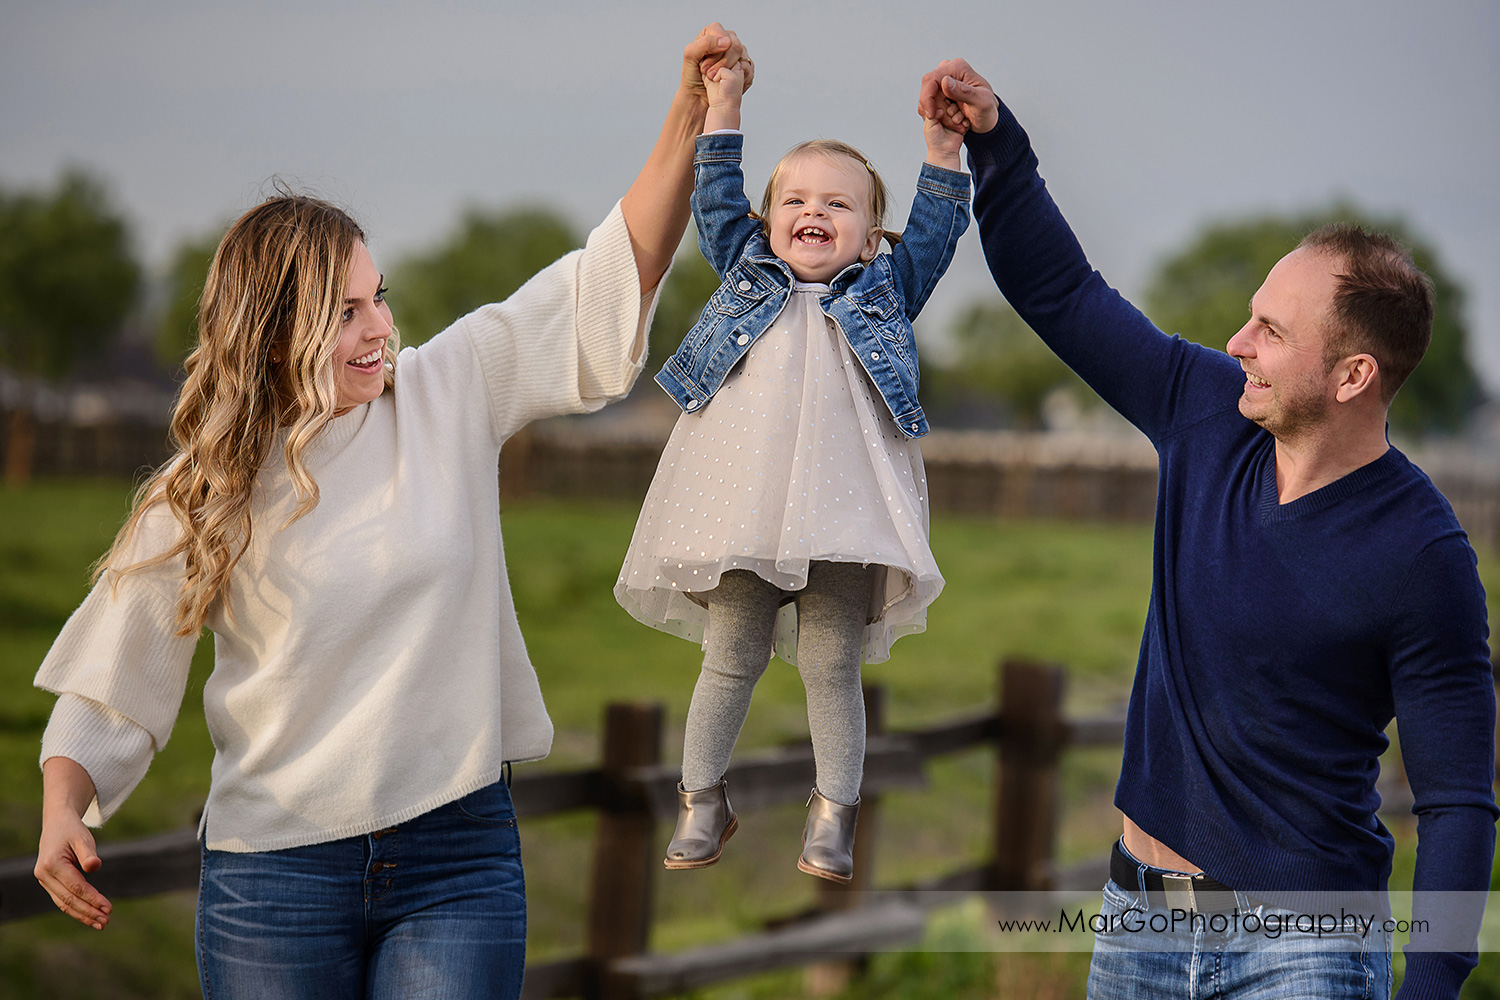 mother and father wearing white and navy blue clothes lifting little girl in white dress during family session at San Jose Martial Cottle Park